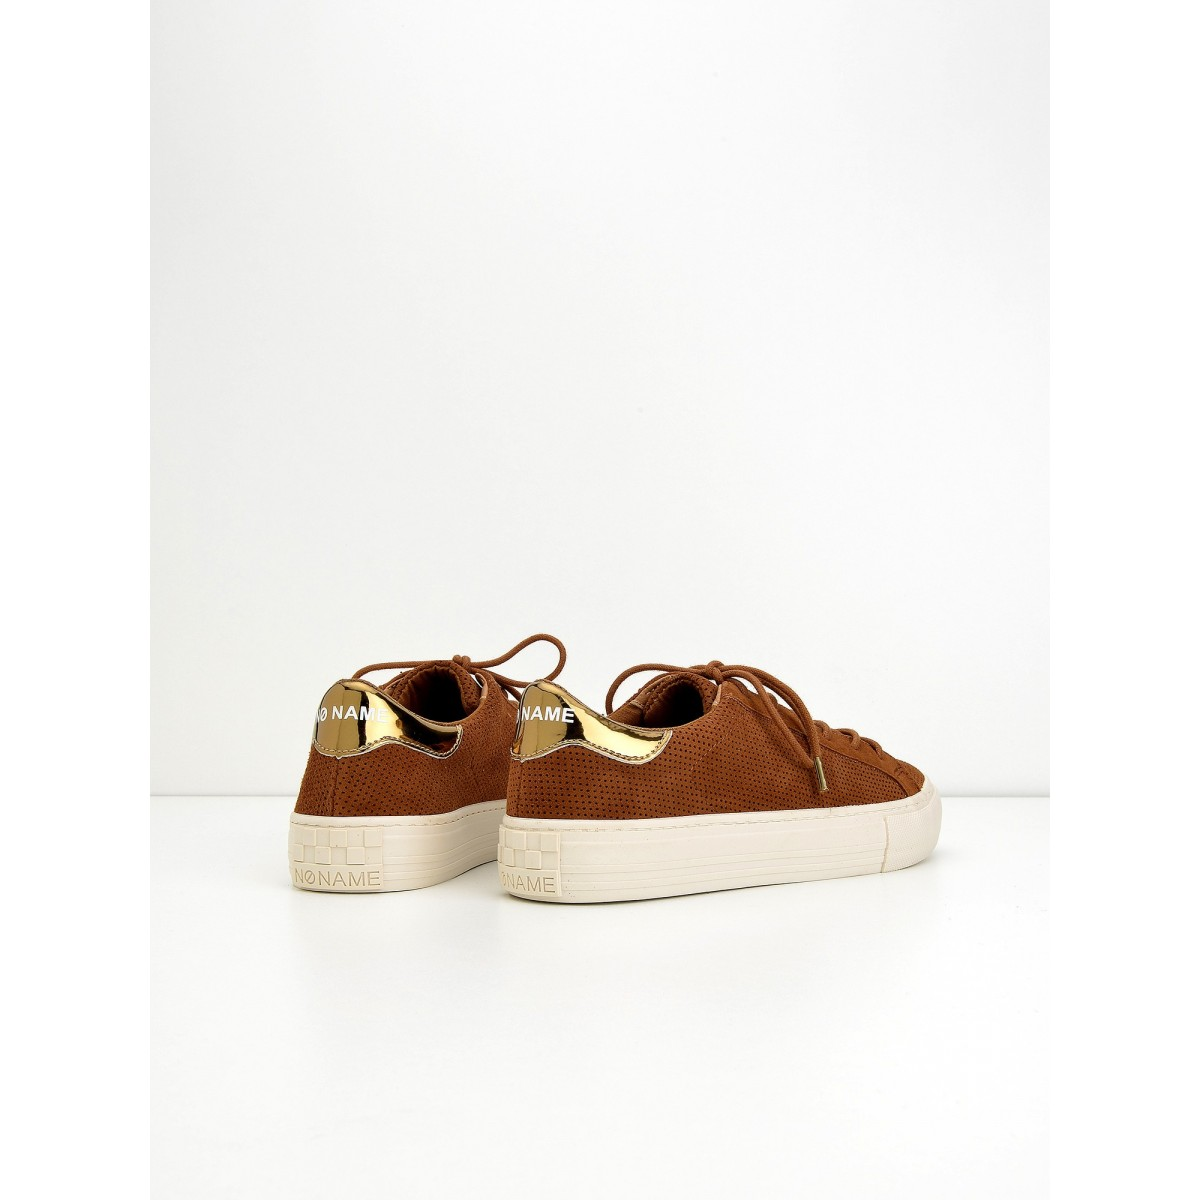 No Name Arcade Sneaker - Punch Goat Sued - Brandy